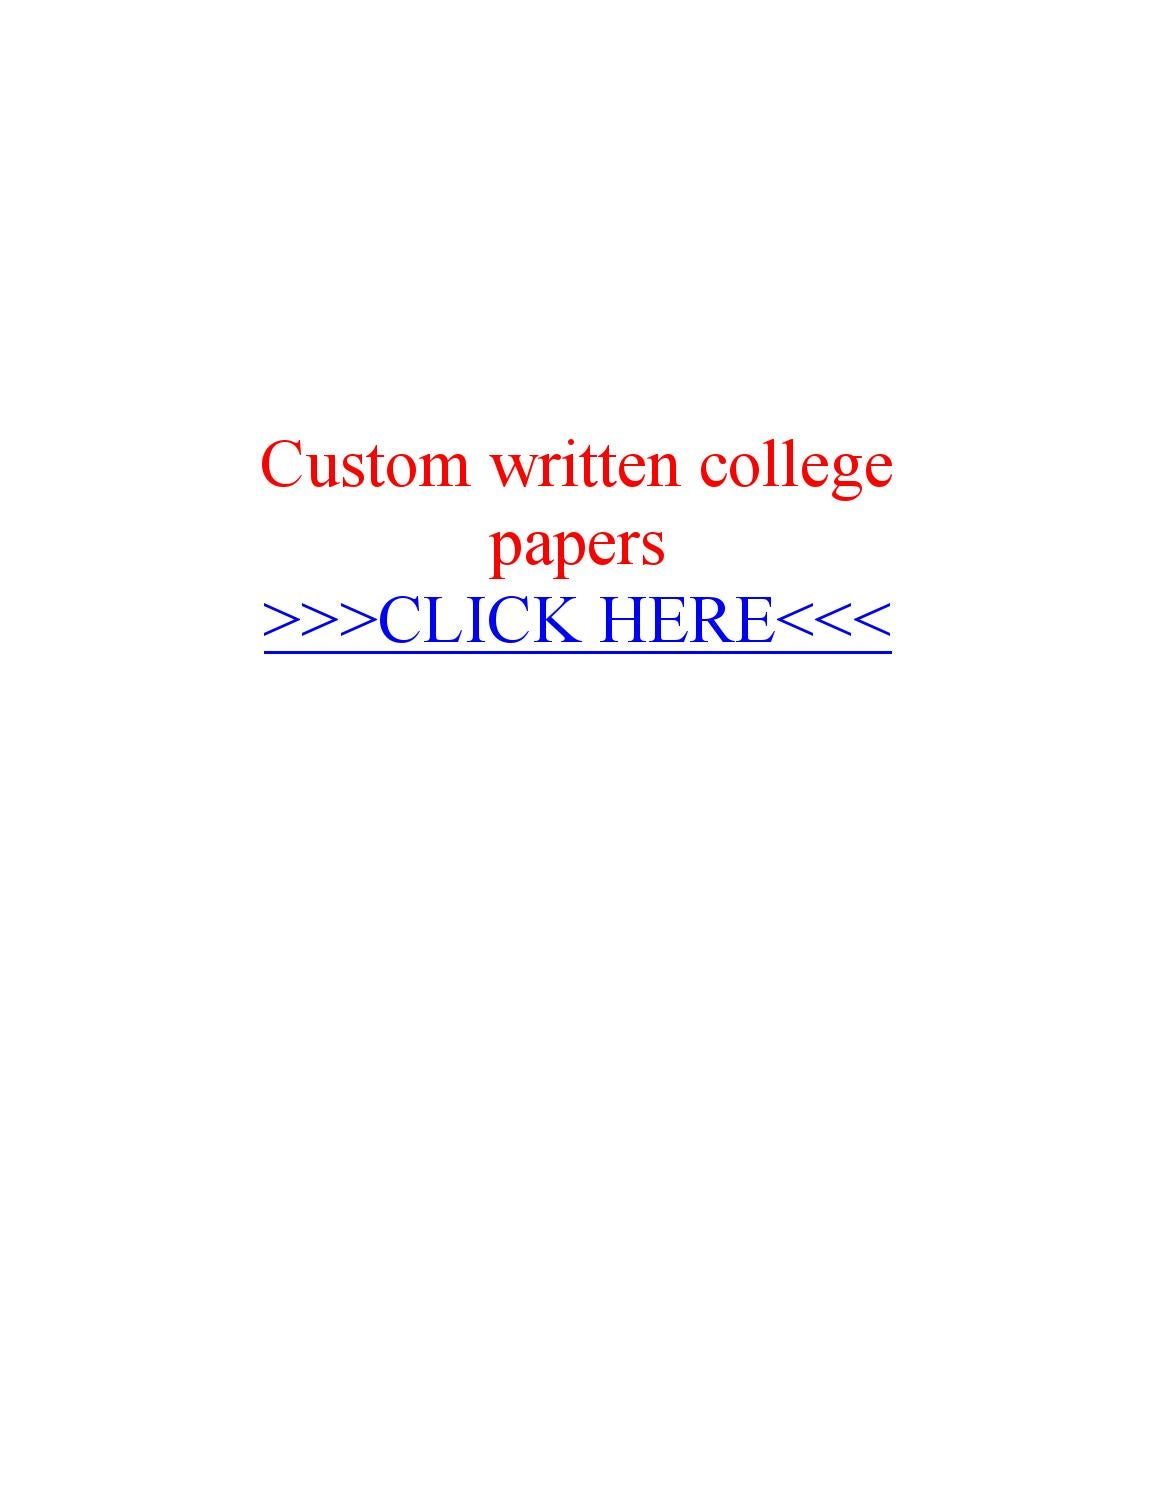 Customs college papers